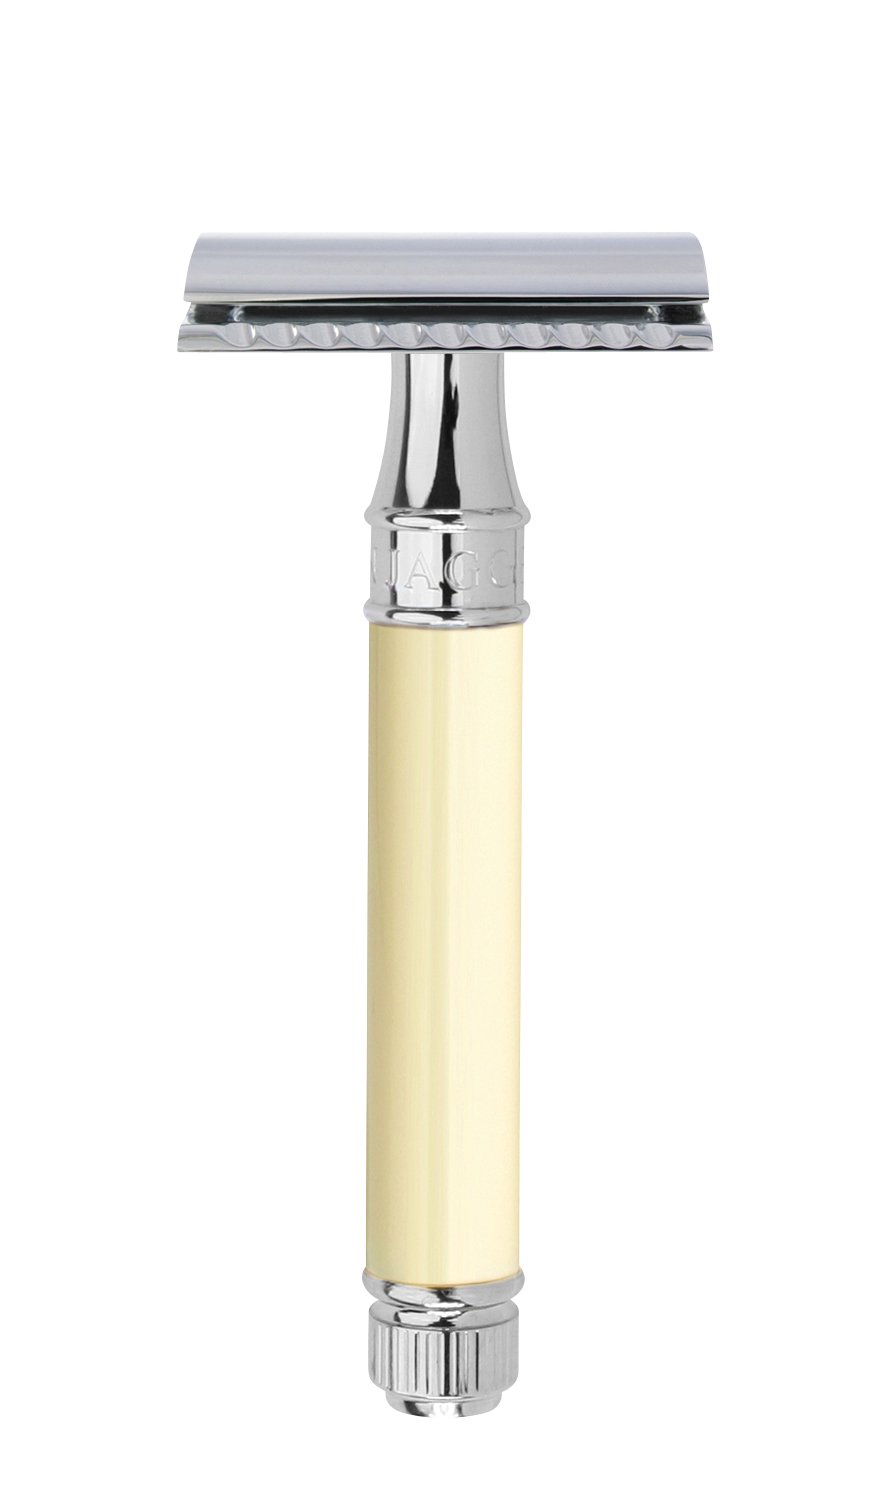 Edwin Jagger Double Edge (DE) Chrome & Ivory Color Handle Safety Razor